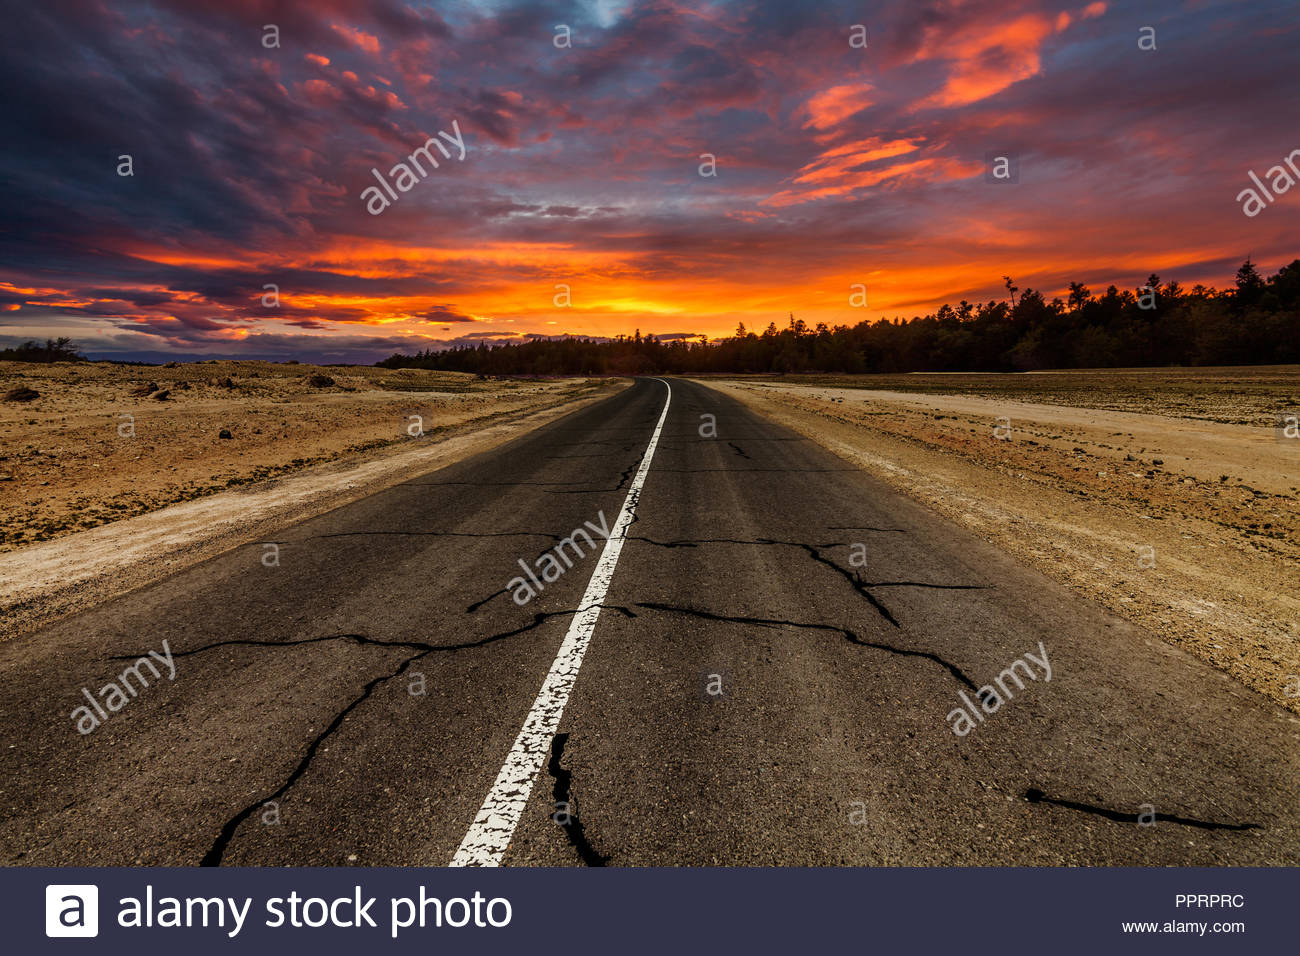 Picturesque fiery sunset over the cracked desert road - Stock Image